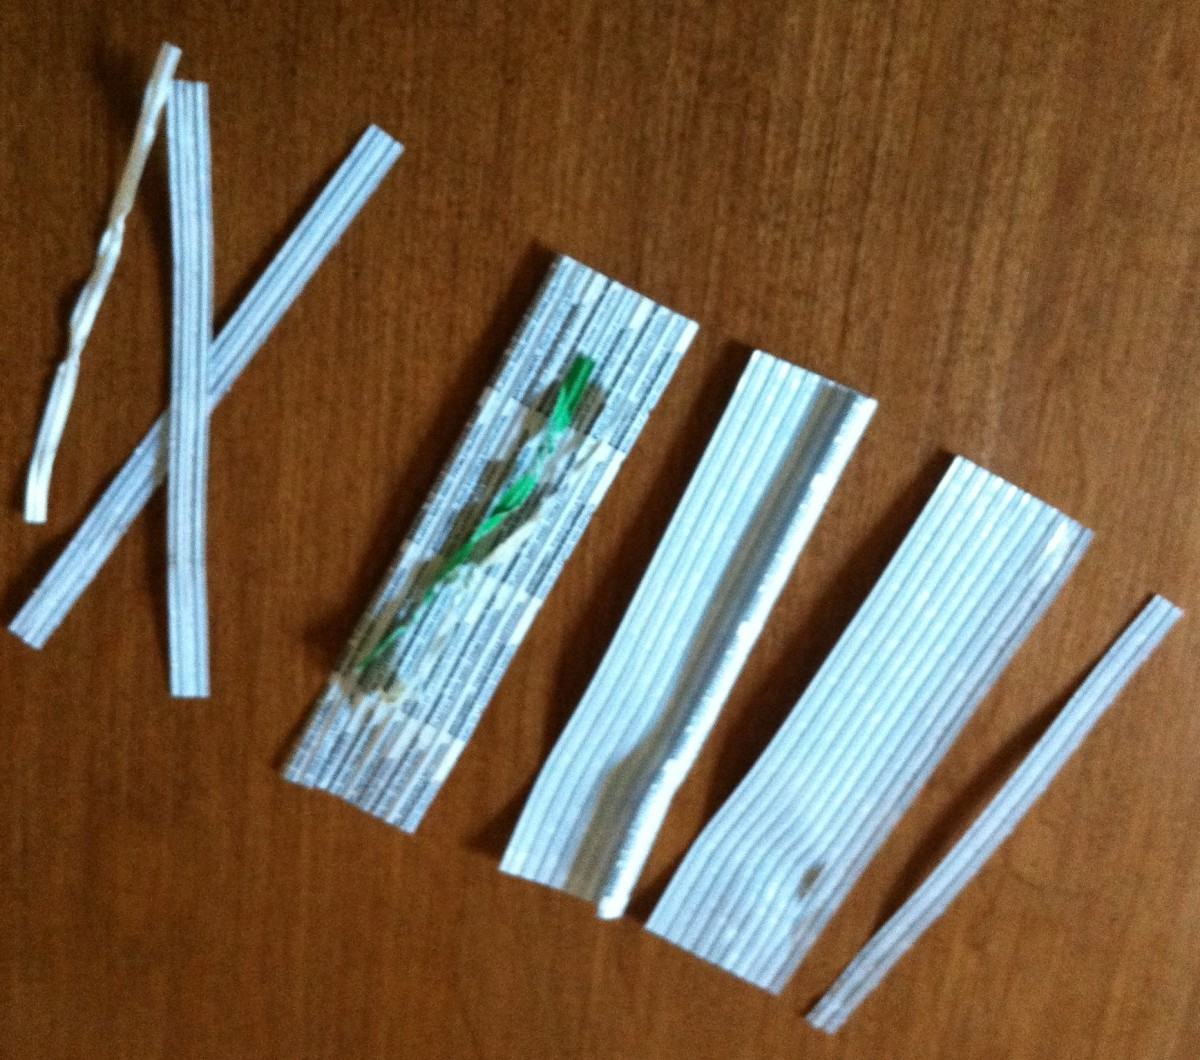 Twist Ties and the Many Uses | HubPages